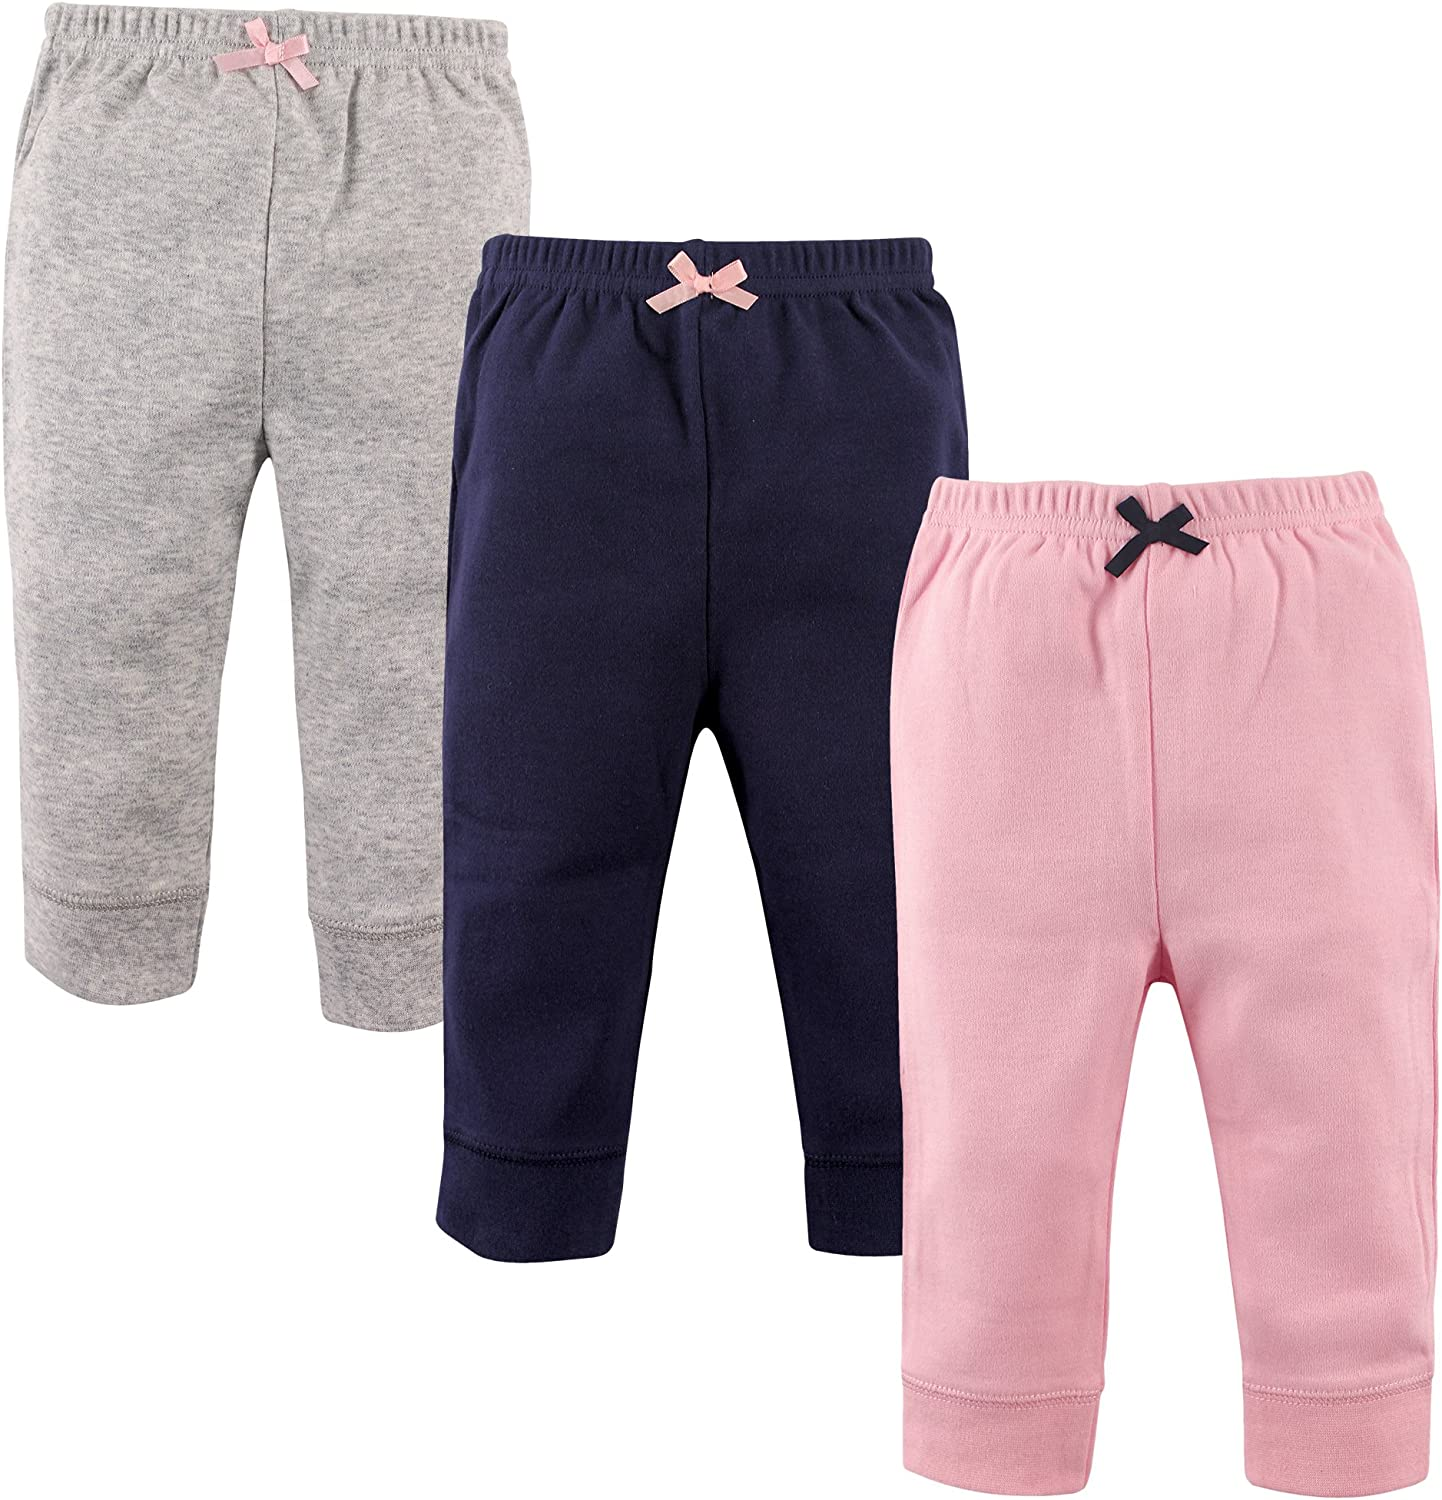 3-Pack Pink and Navy Luvable Friends Girl Baby Leggings